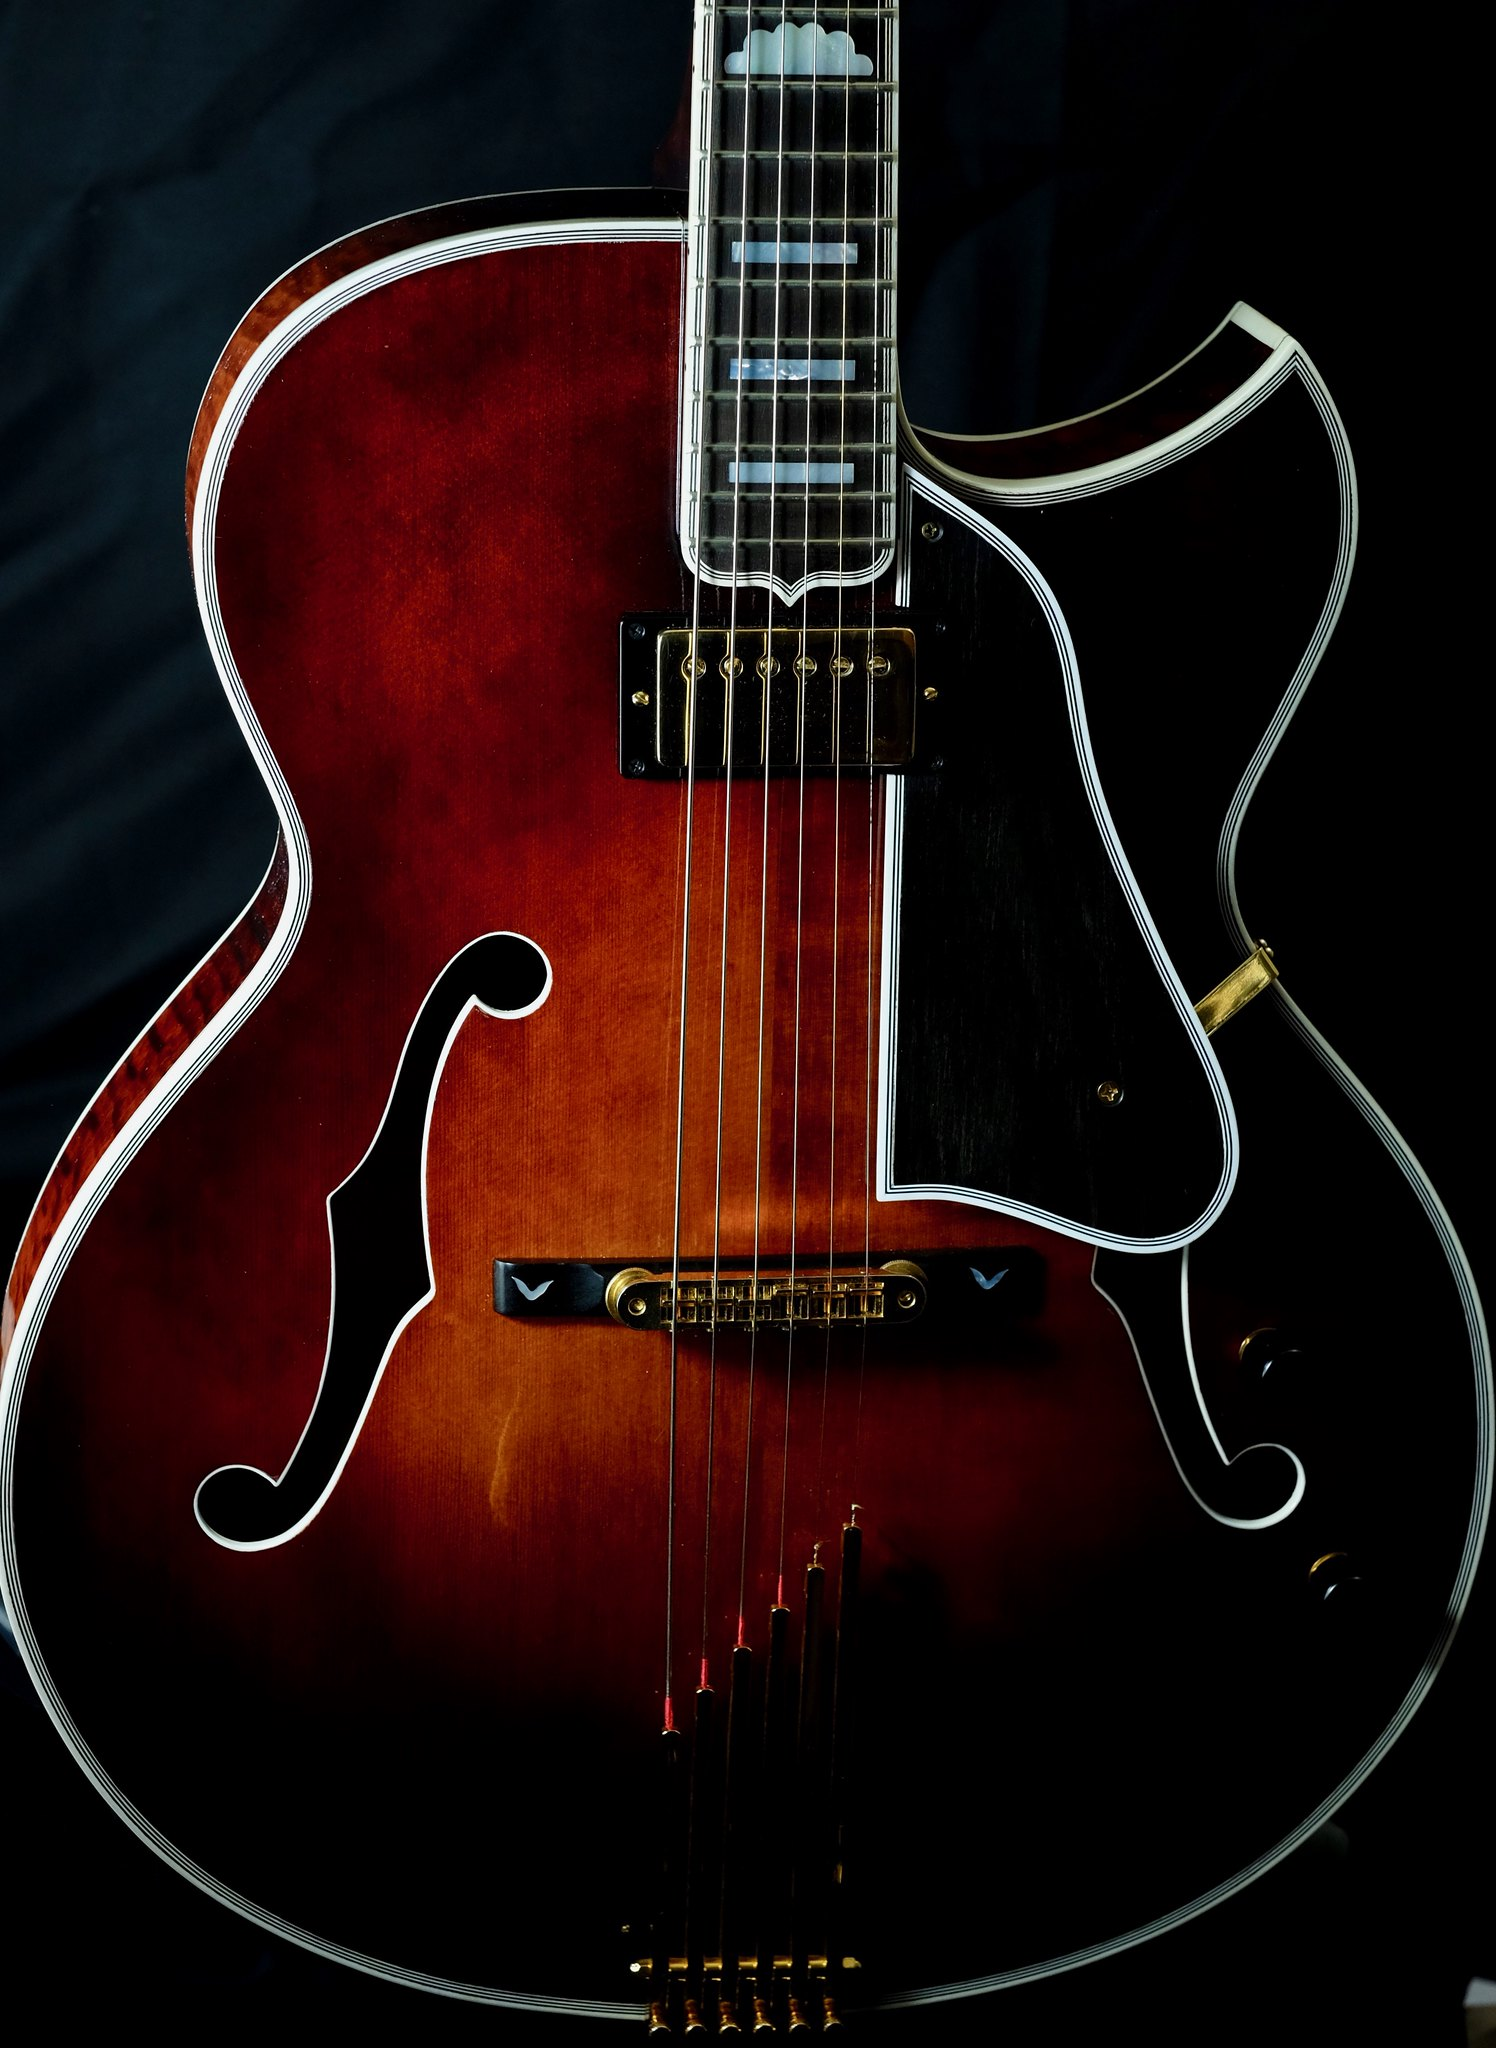 Two good things about Heritage guitars-77eac5a9-5520-4438-8957-5ac31df5c7d7-jpeg